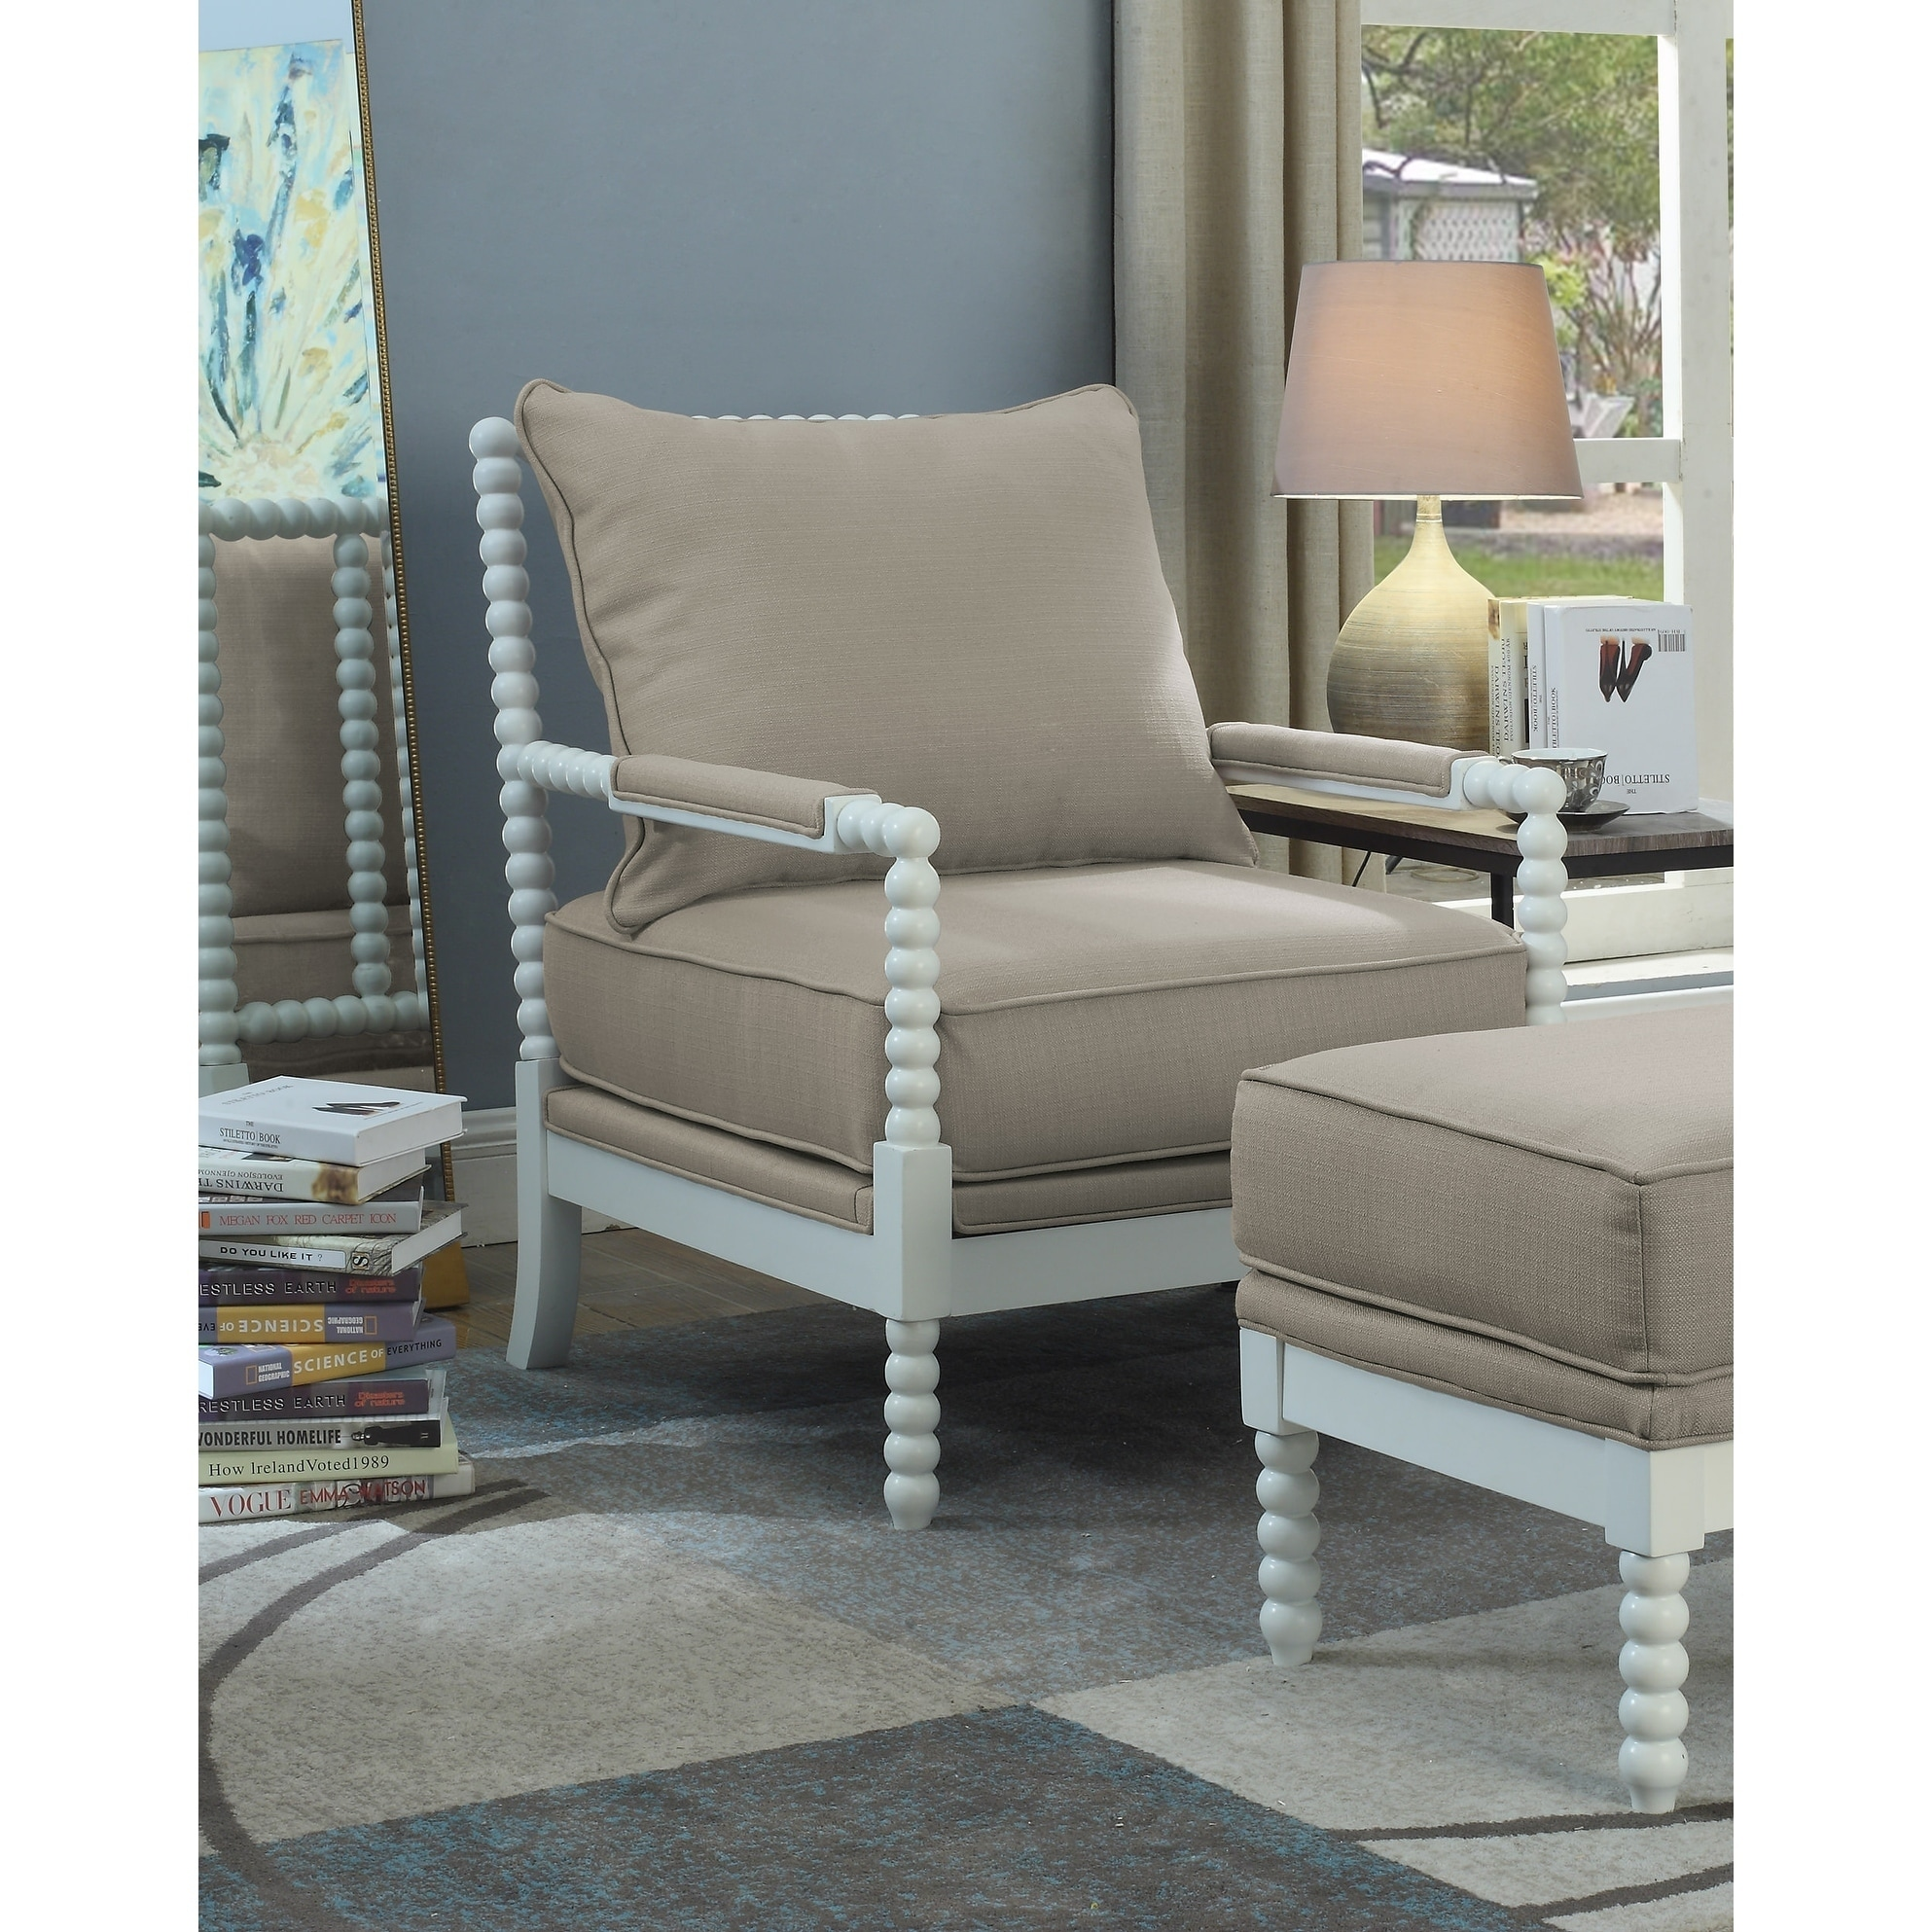 Shop Best Master Furniture Beige/White Fabric/Wood Armchair - Free Shipping Today - Overstock.com - 21950227  sc 1 st  Overstock.com & Shop Best Master Furniture Beige/White Fabric/Wood Armchair - Free ...